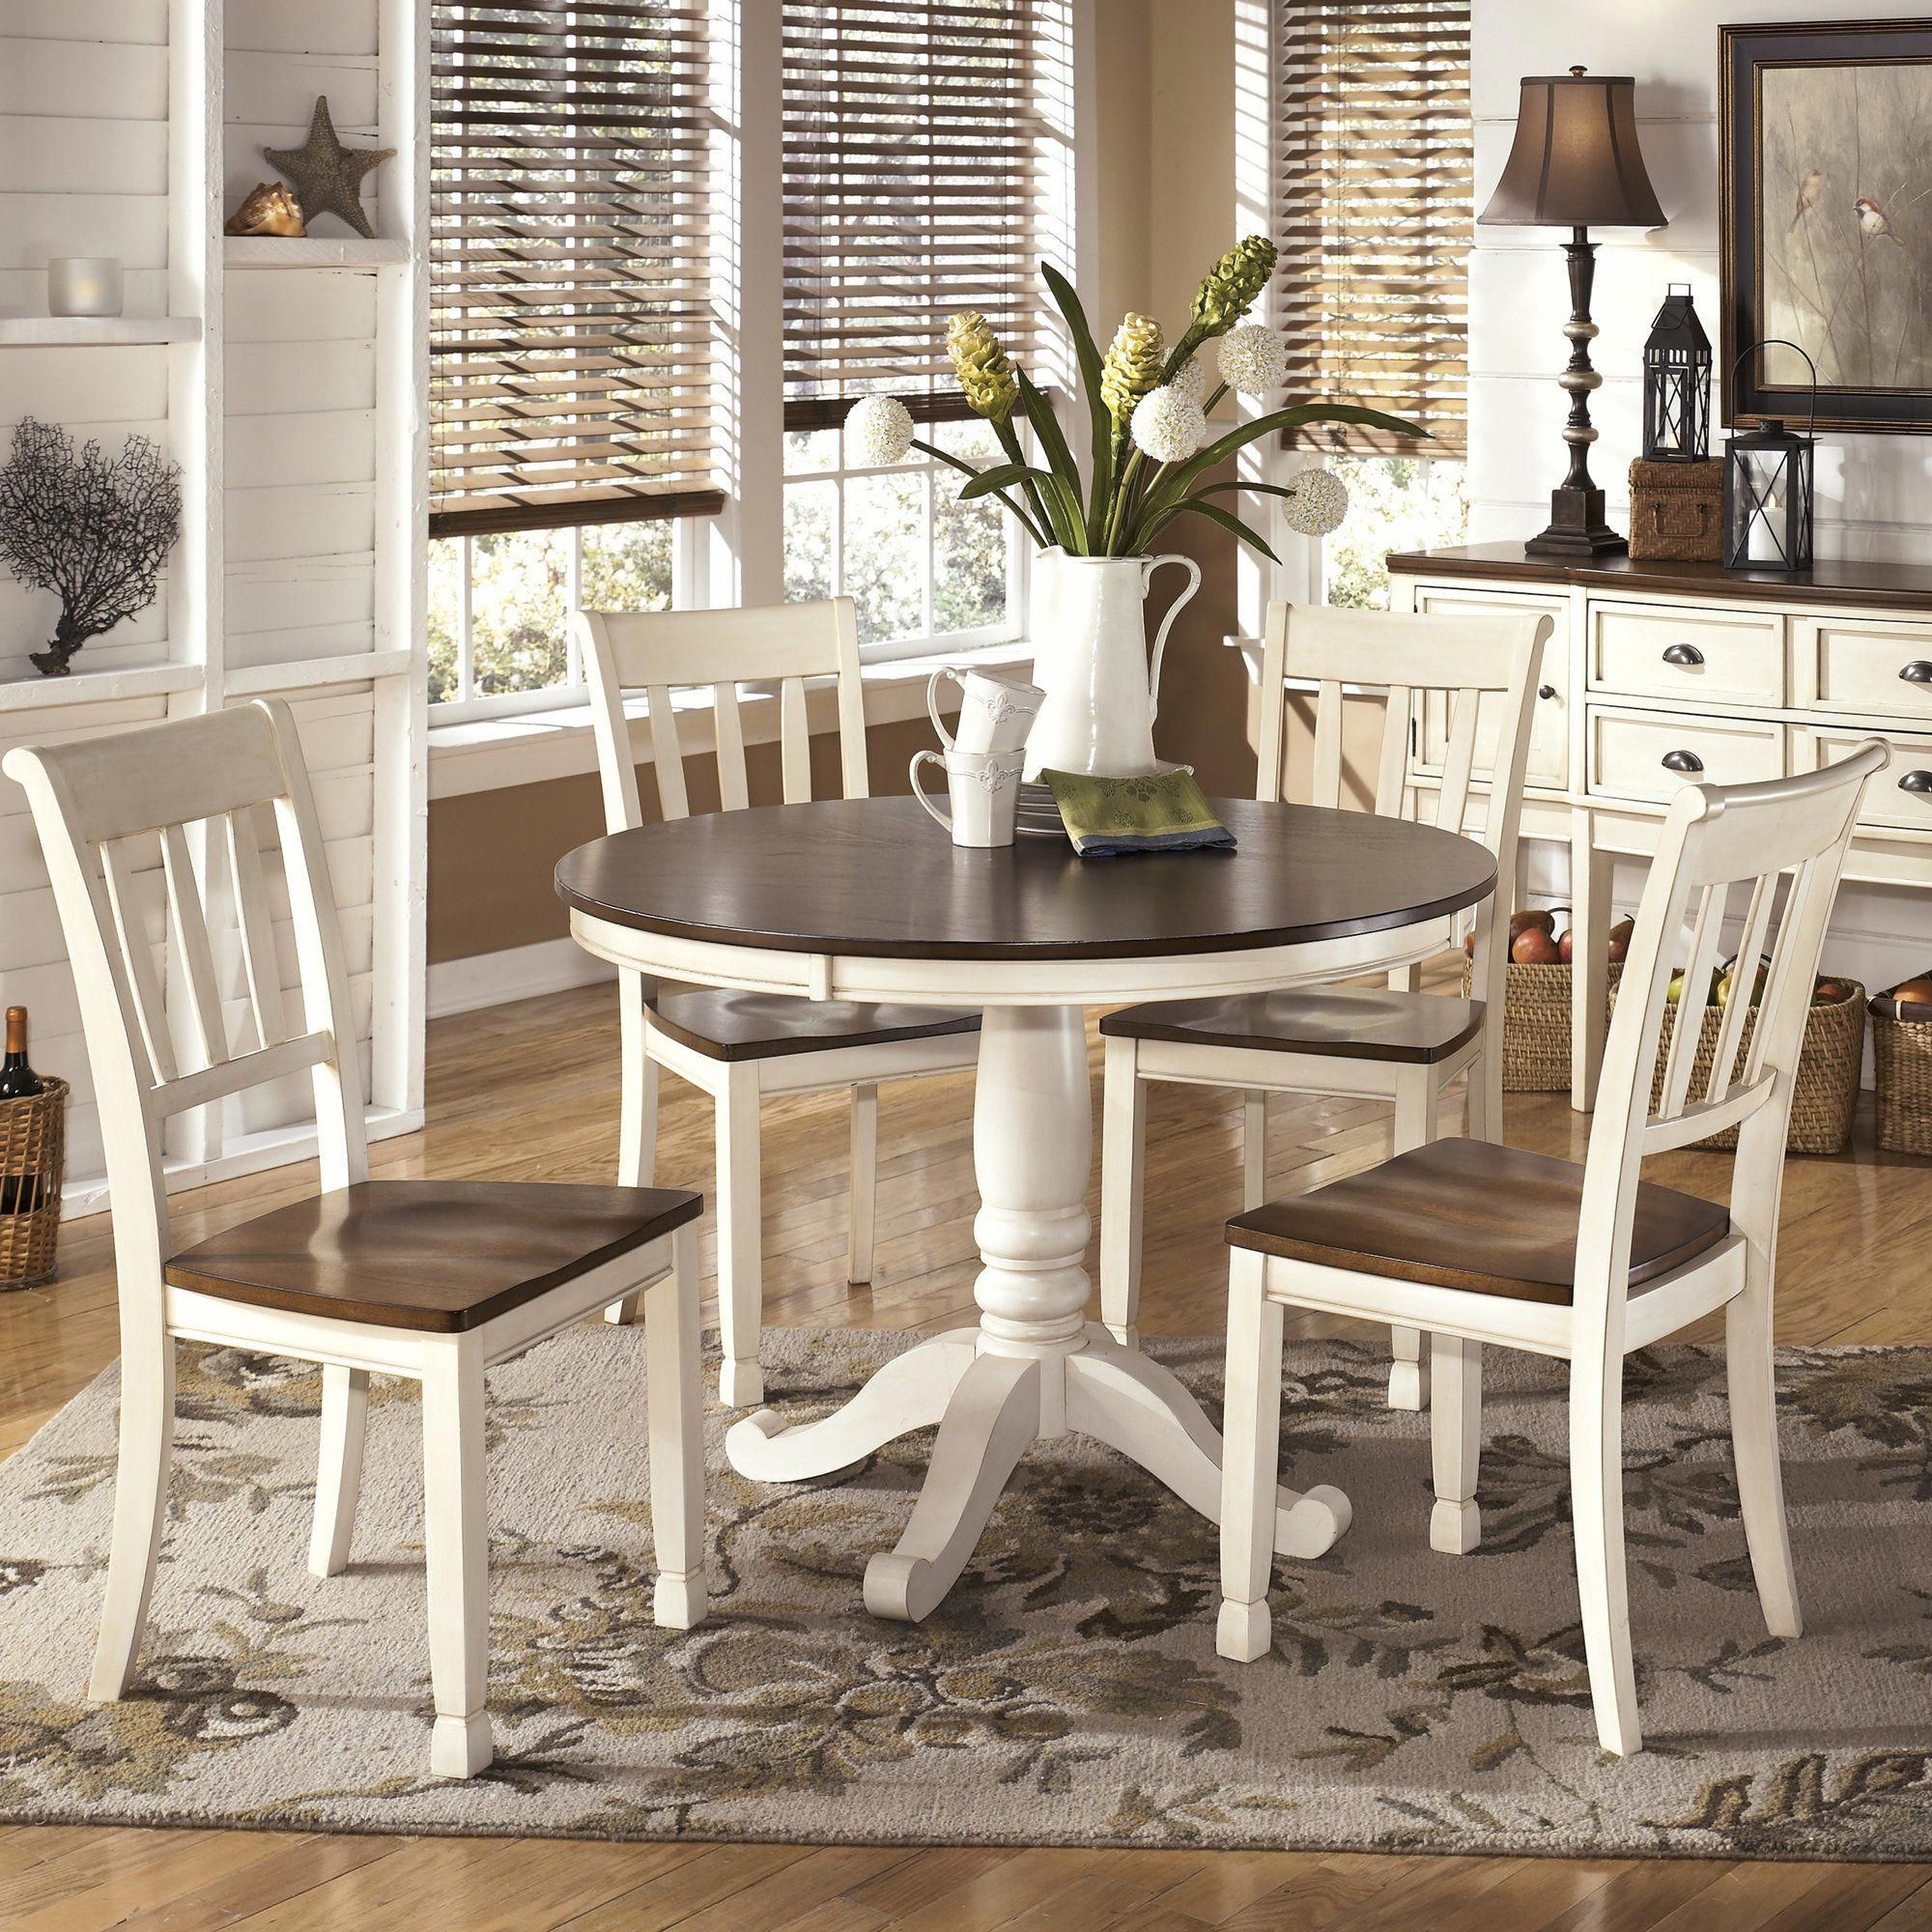 Magellan Dining Table Rustic Kitchen Tables Small Round Kitchen Table White Kitchen Table